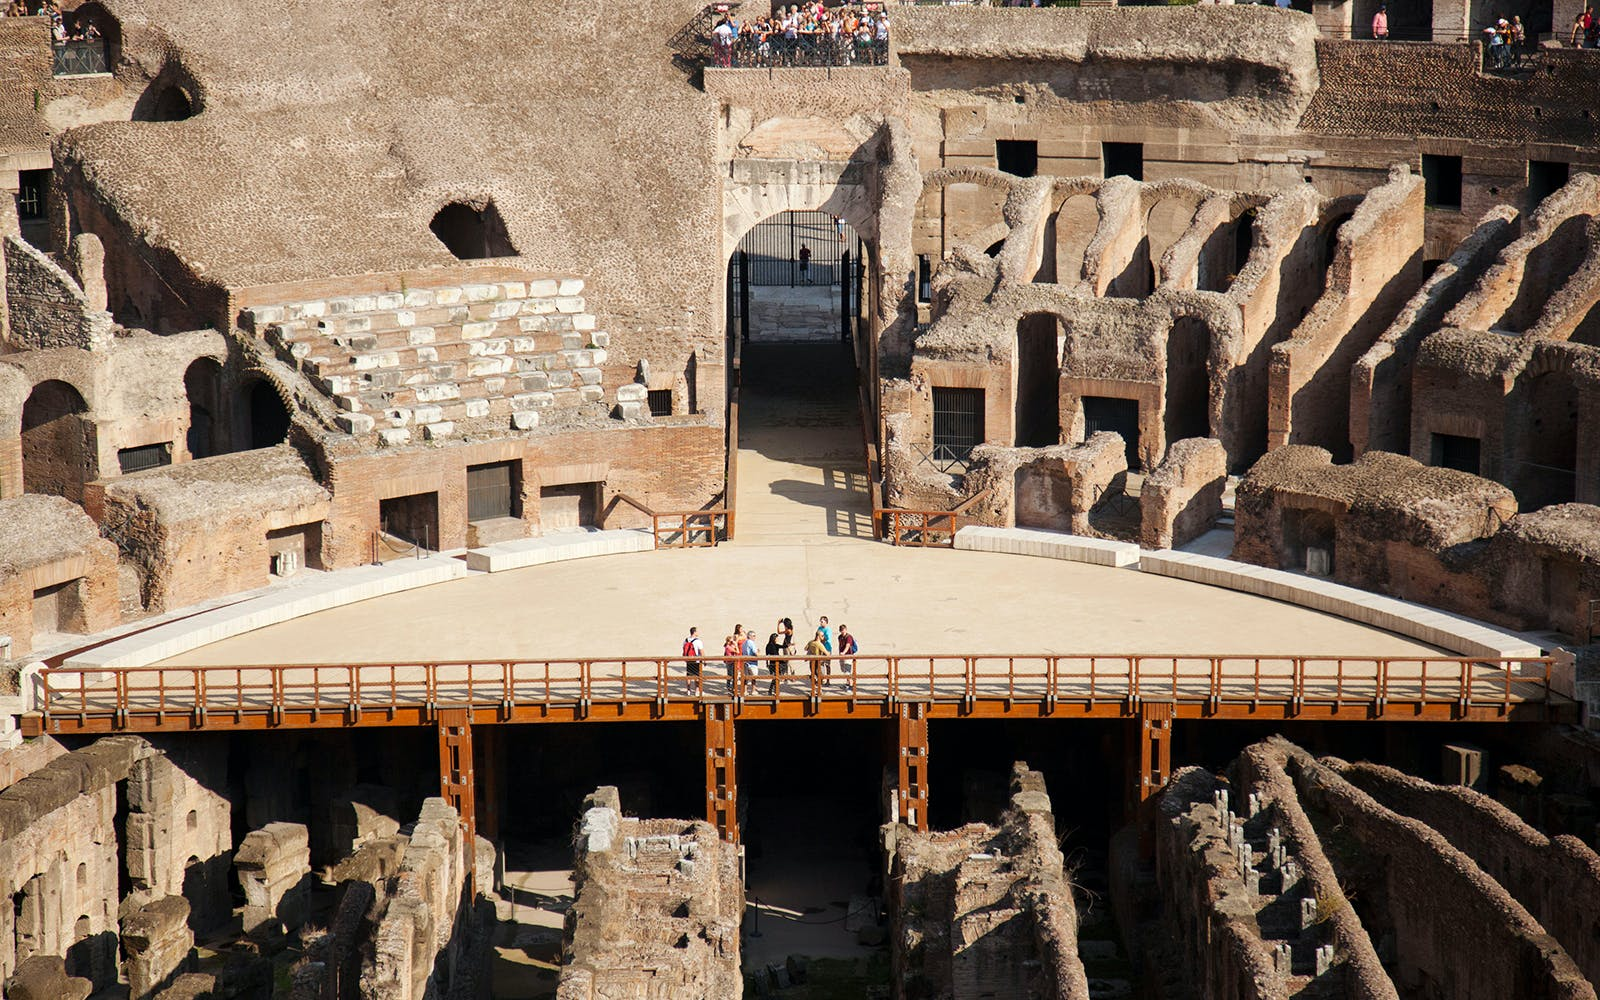 Skip The Line Guided Tour of Colosseum with Arena Access, Roman Forum & Palatine